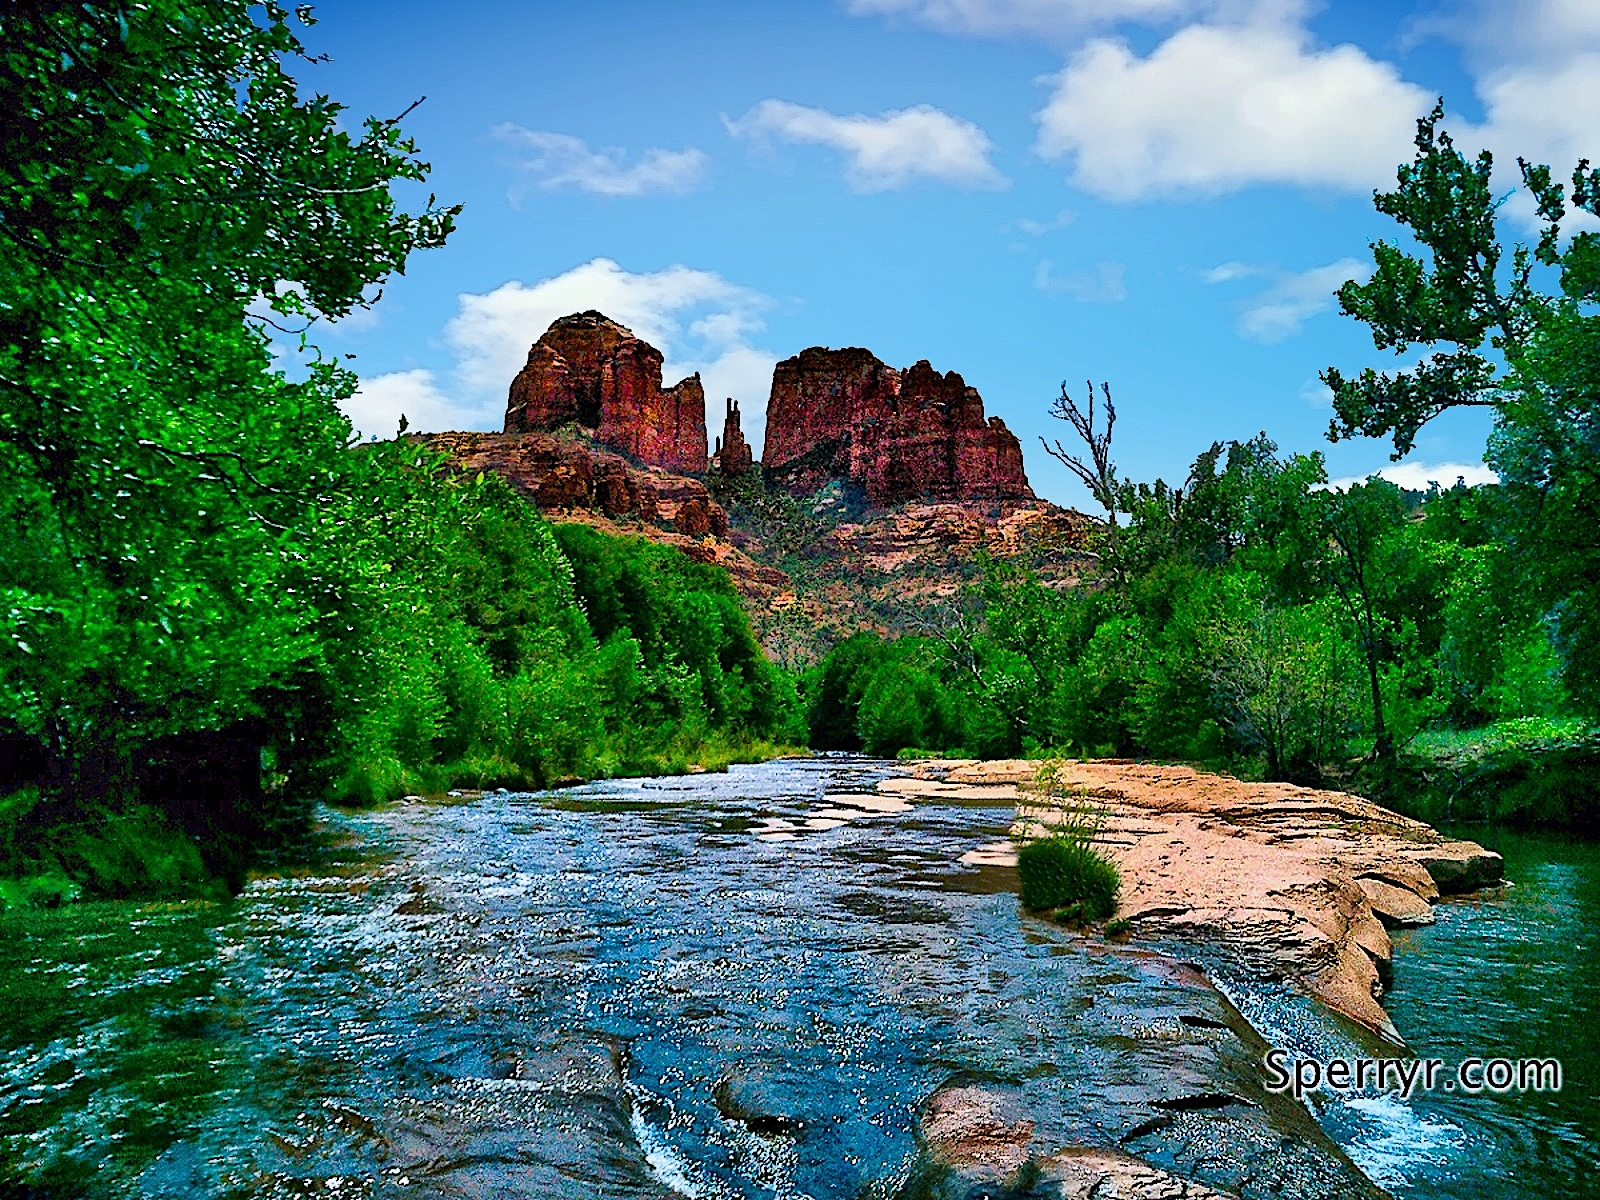 Cathedral Rock Red Rock Crossing - Sheri Sperry Coldwell Banker top sedona real estate agent